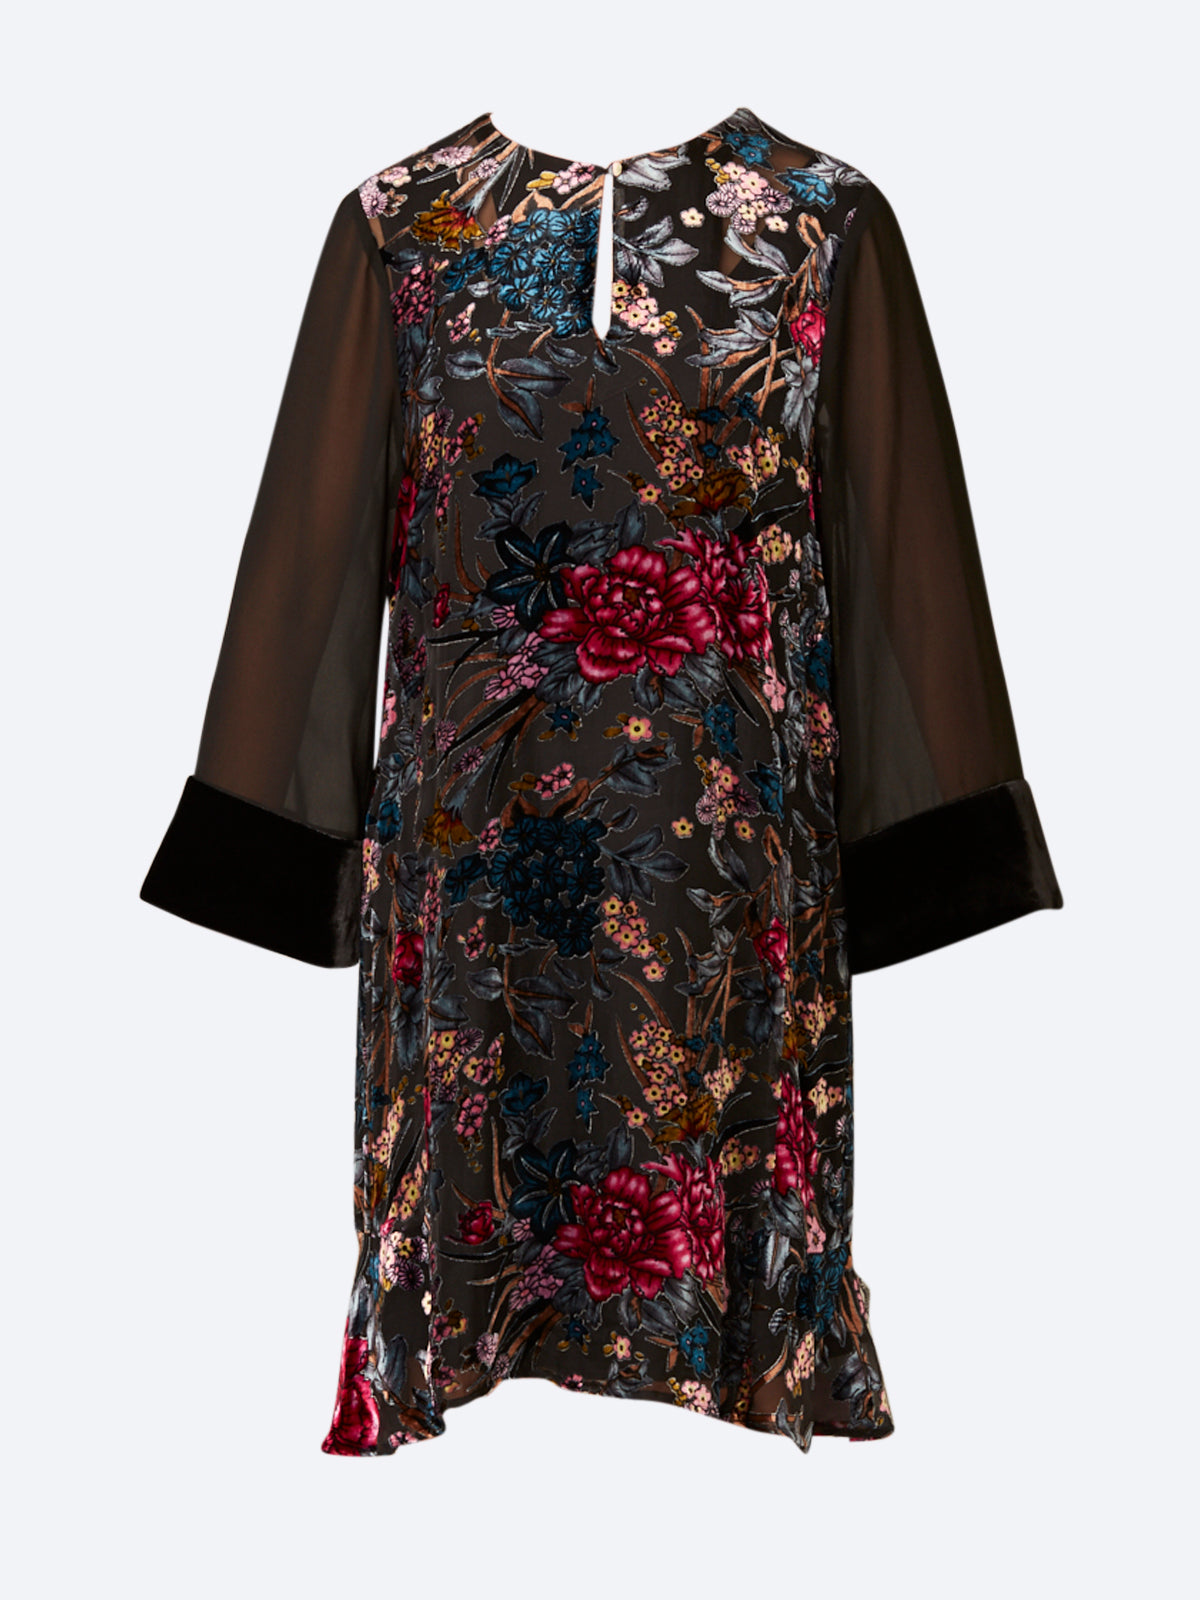 VERGE ZEN VELVET DRESS